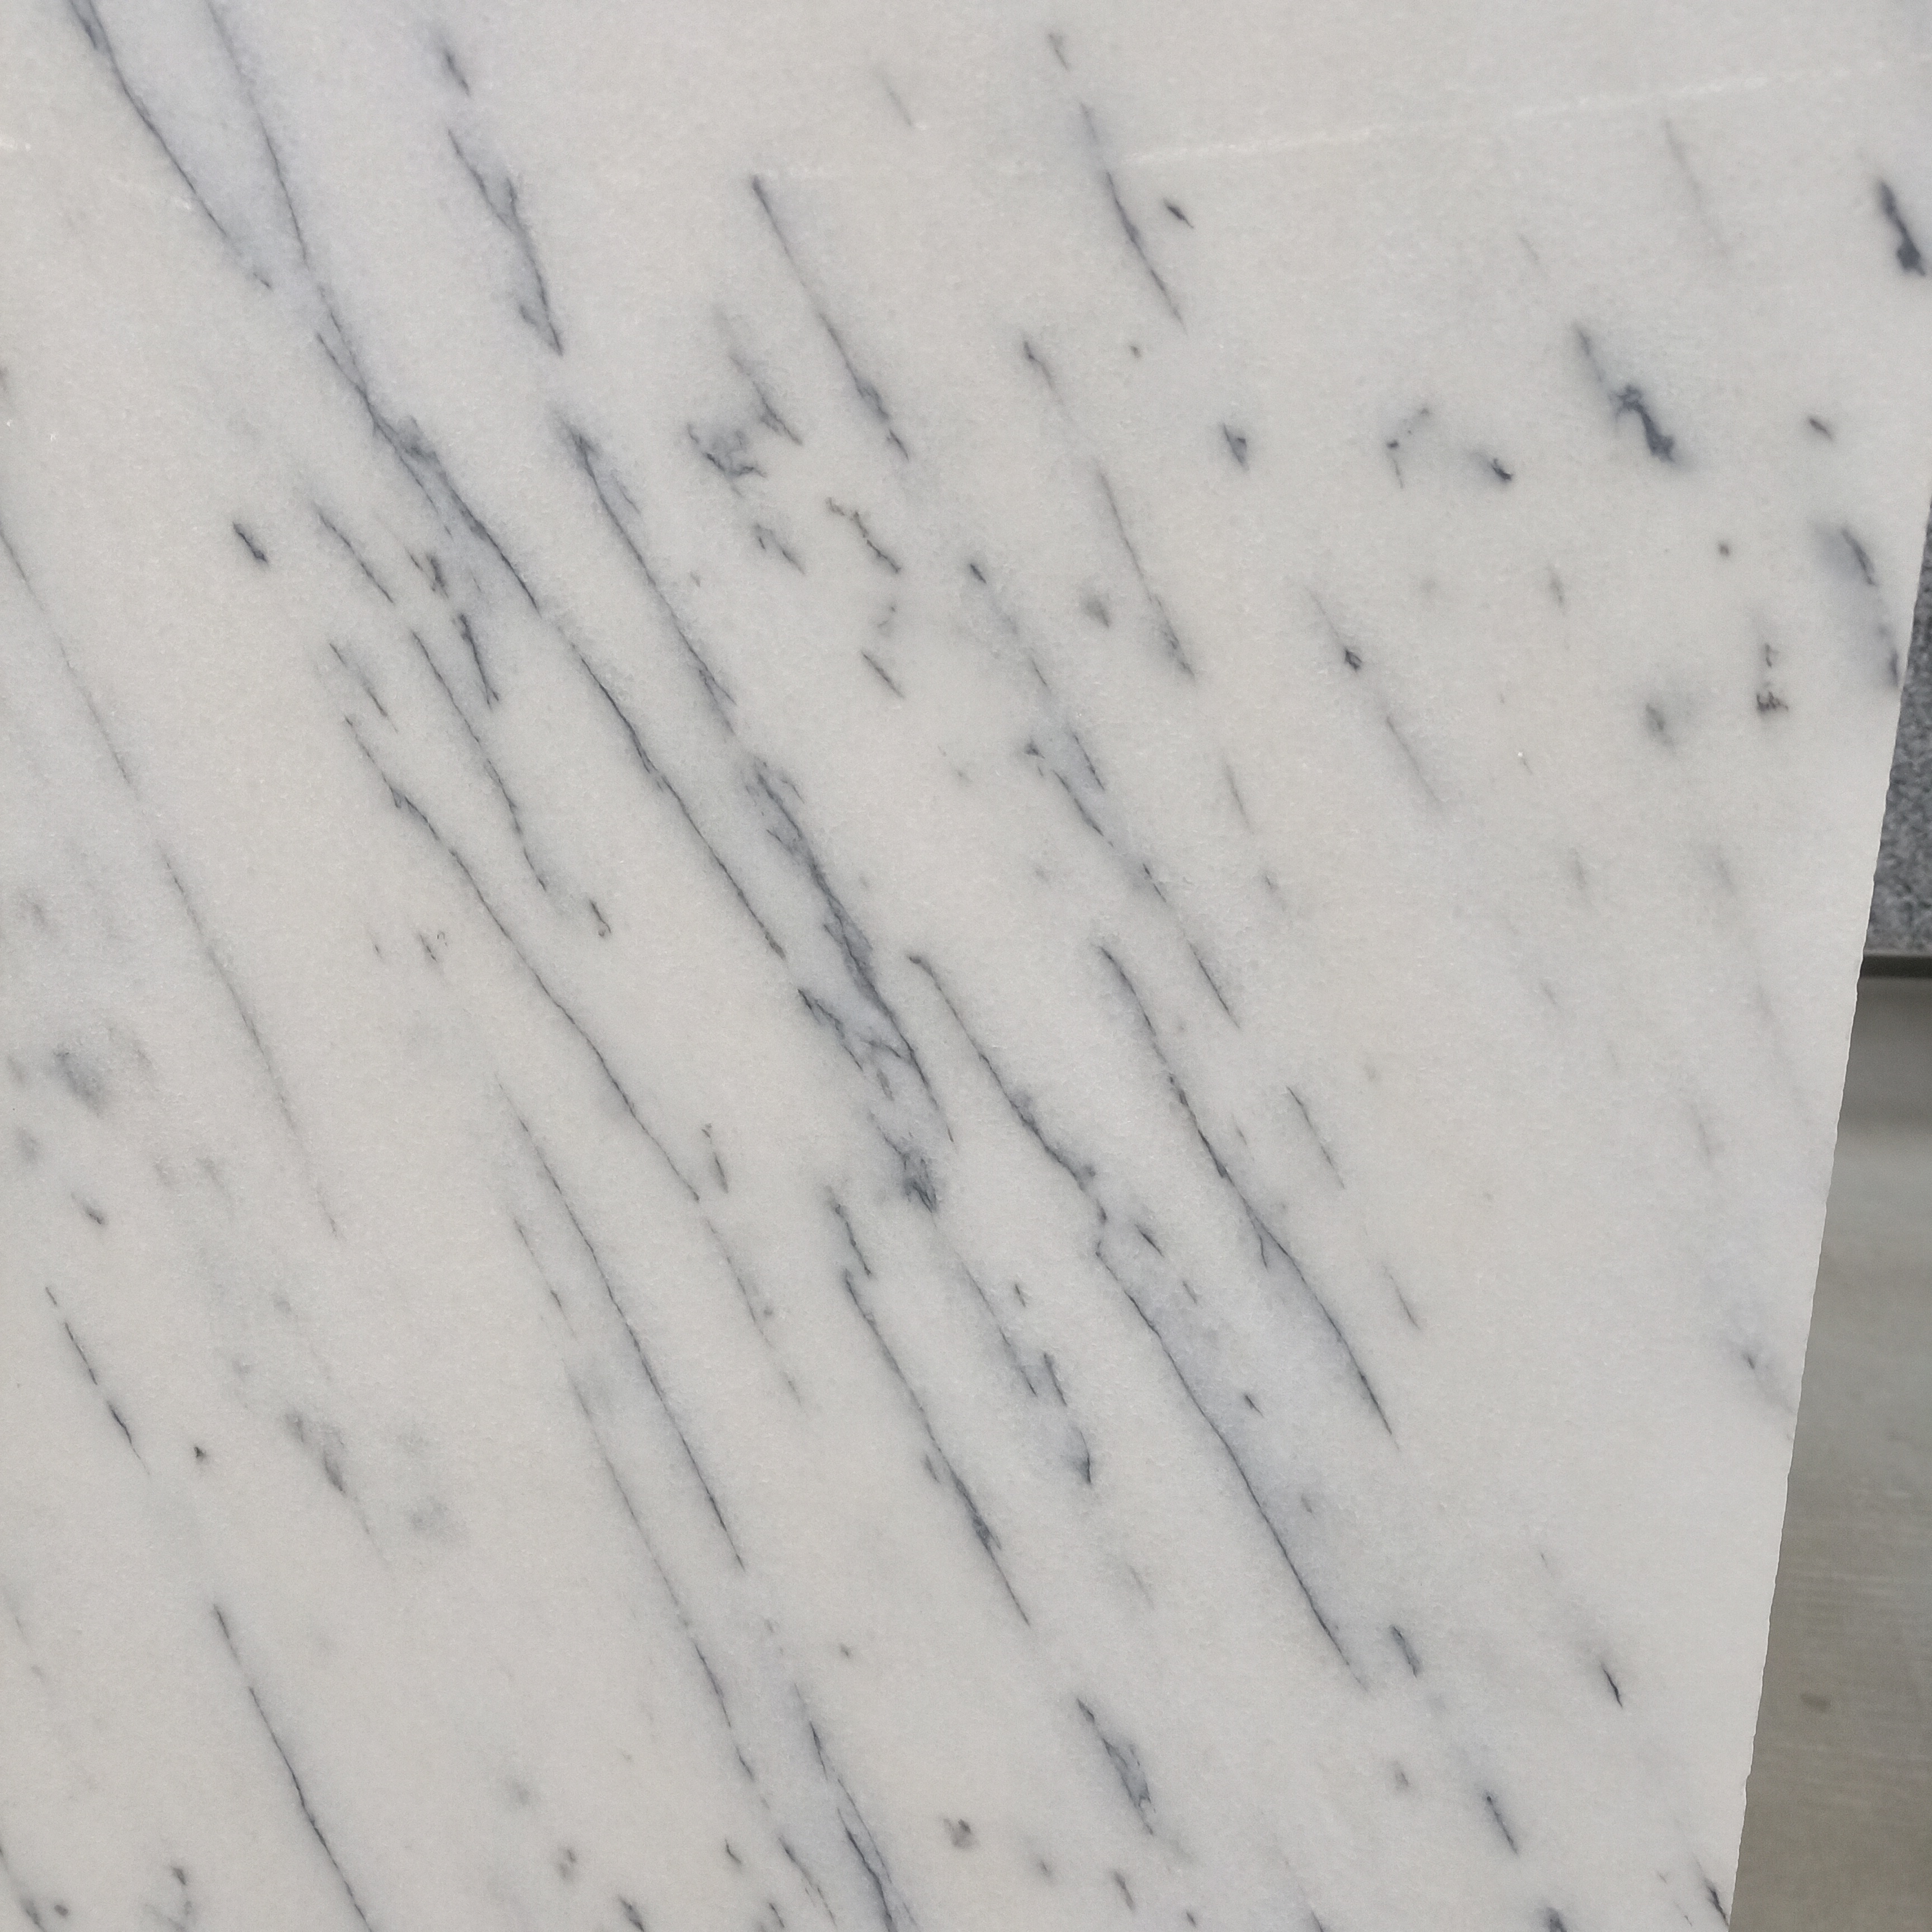 snow white marble tile with veins